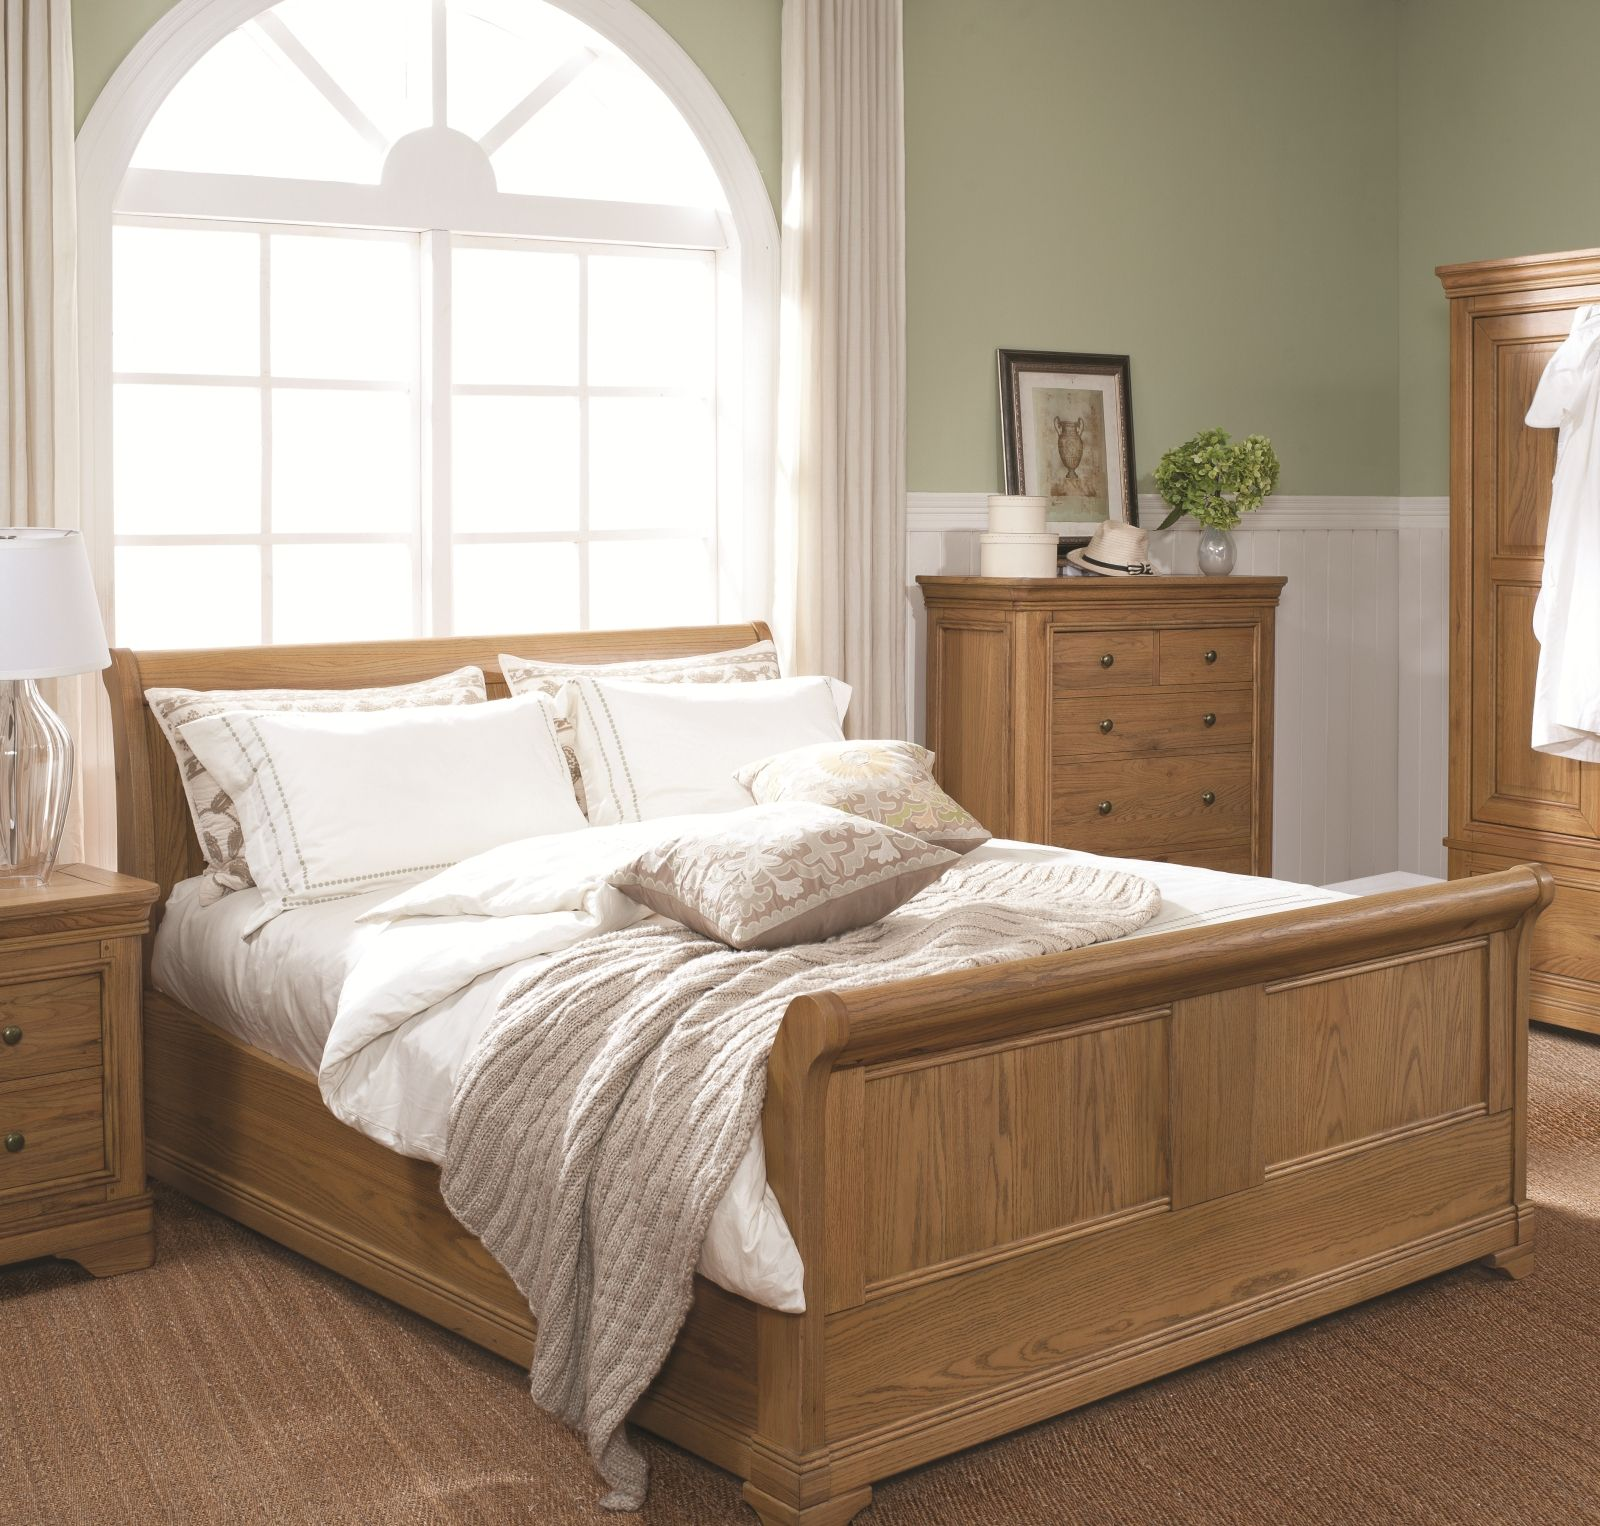 Elegant LIVINGSTONE TRADITIONAL OAK BEDROOM / LOUNGE/ DINING FURNITURE #OakFurniture